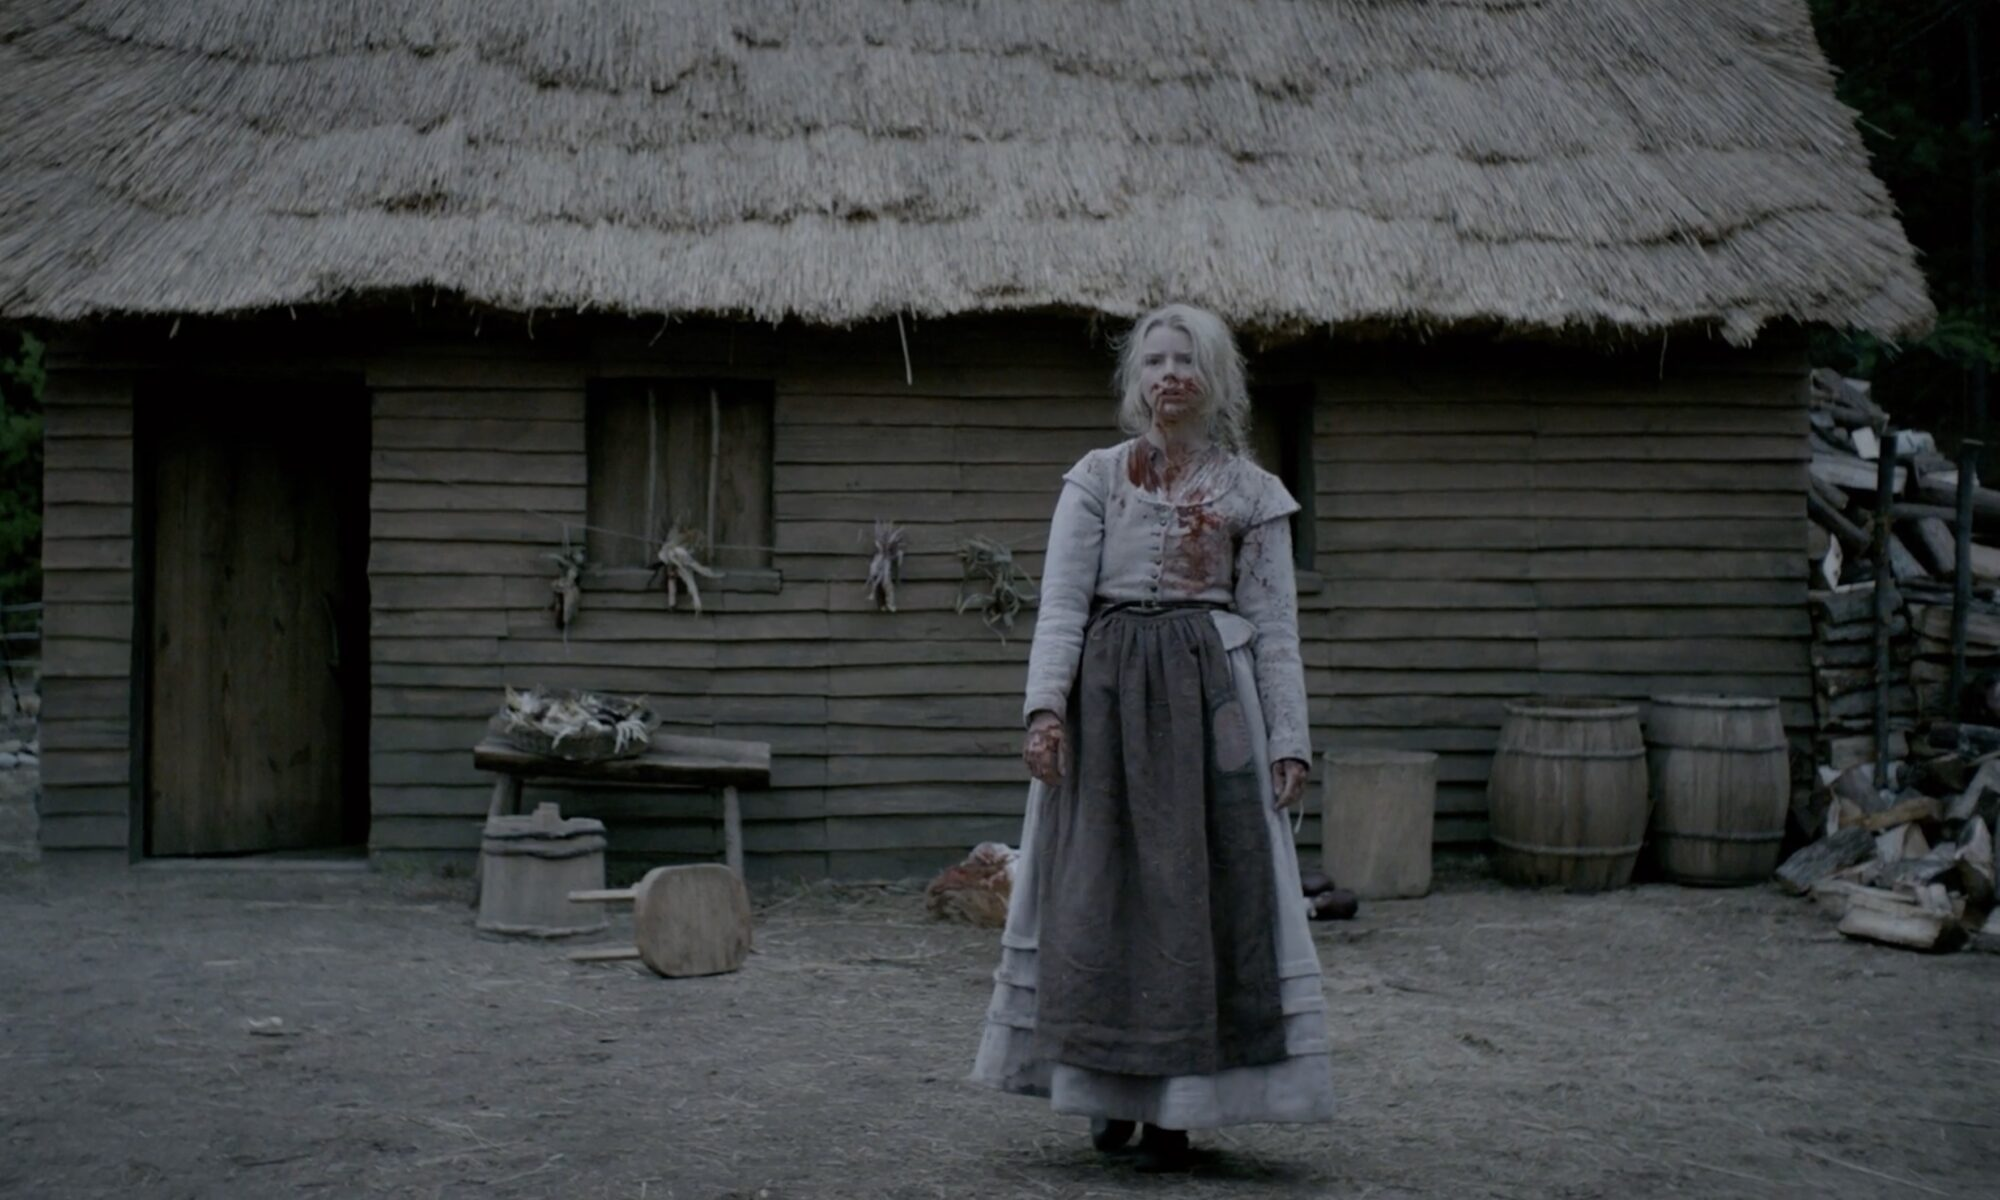 Scene from The Witch of Thomasin, a teenage girl dressed in 15th century clothing, standing alone and bloodied in front of a cabin